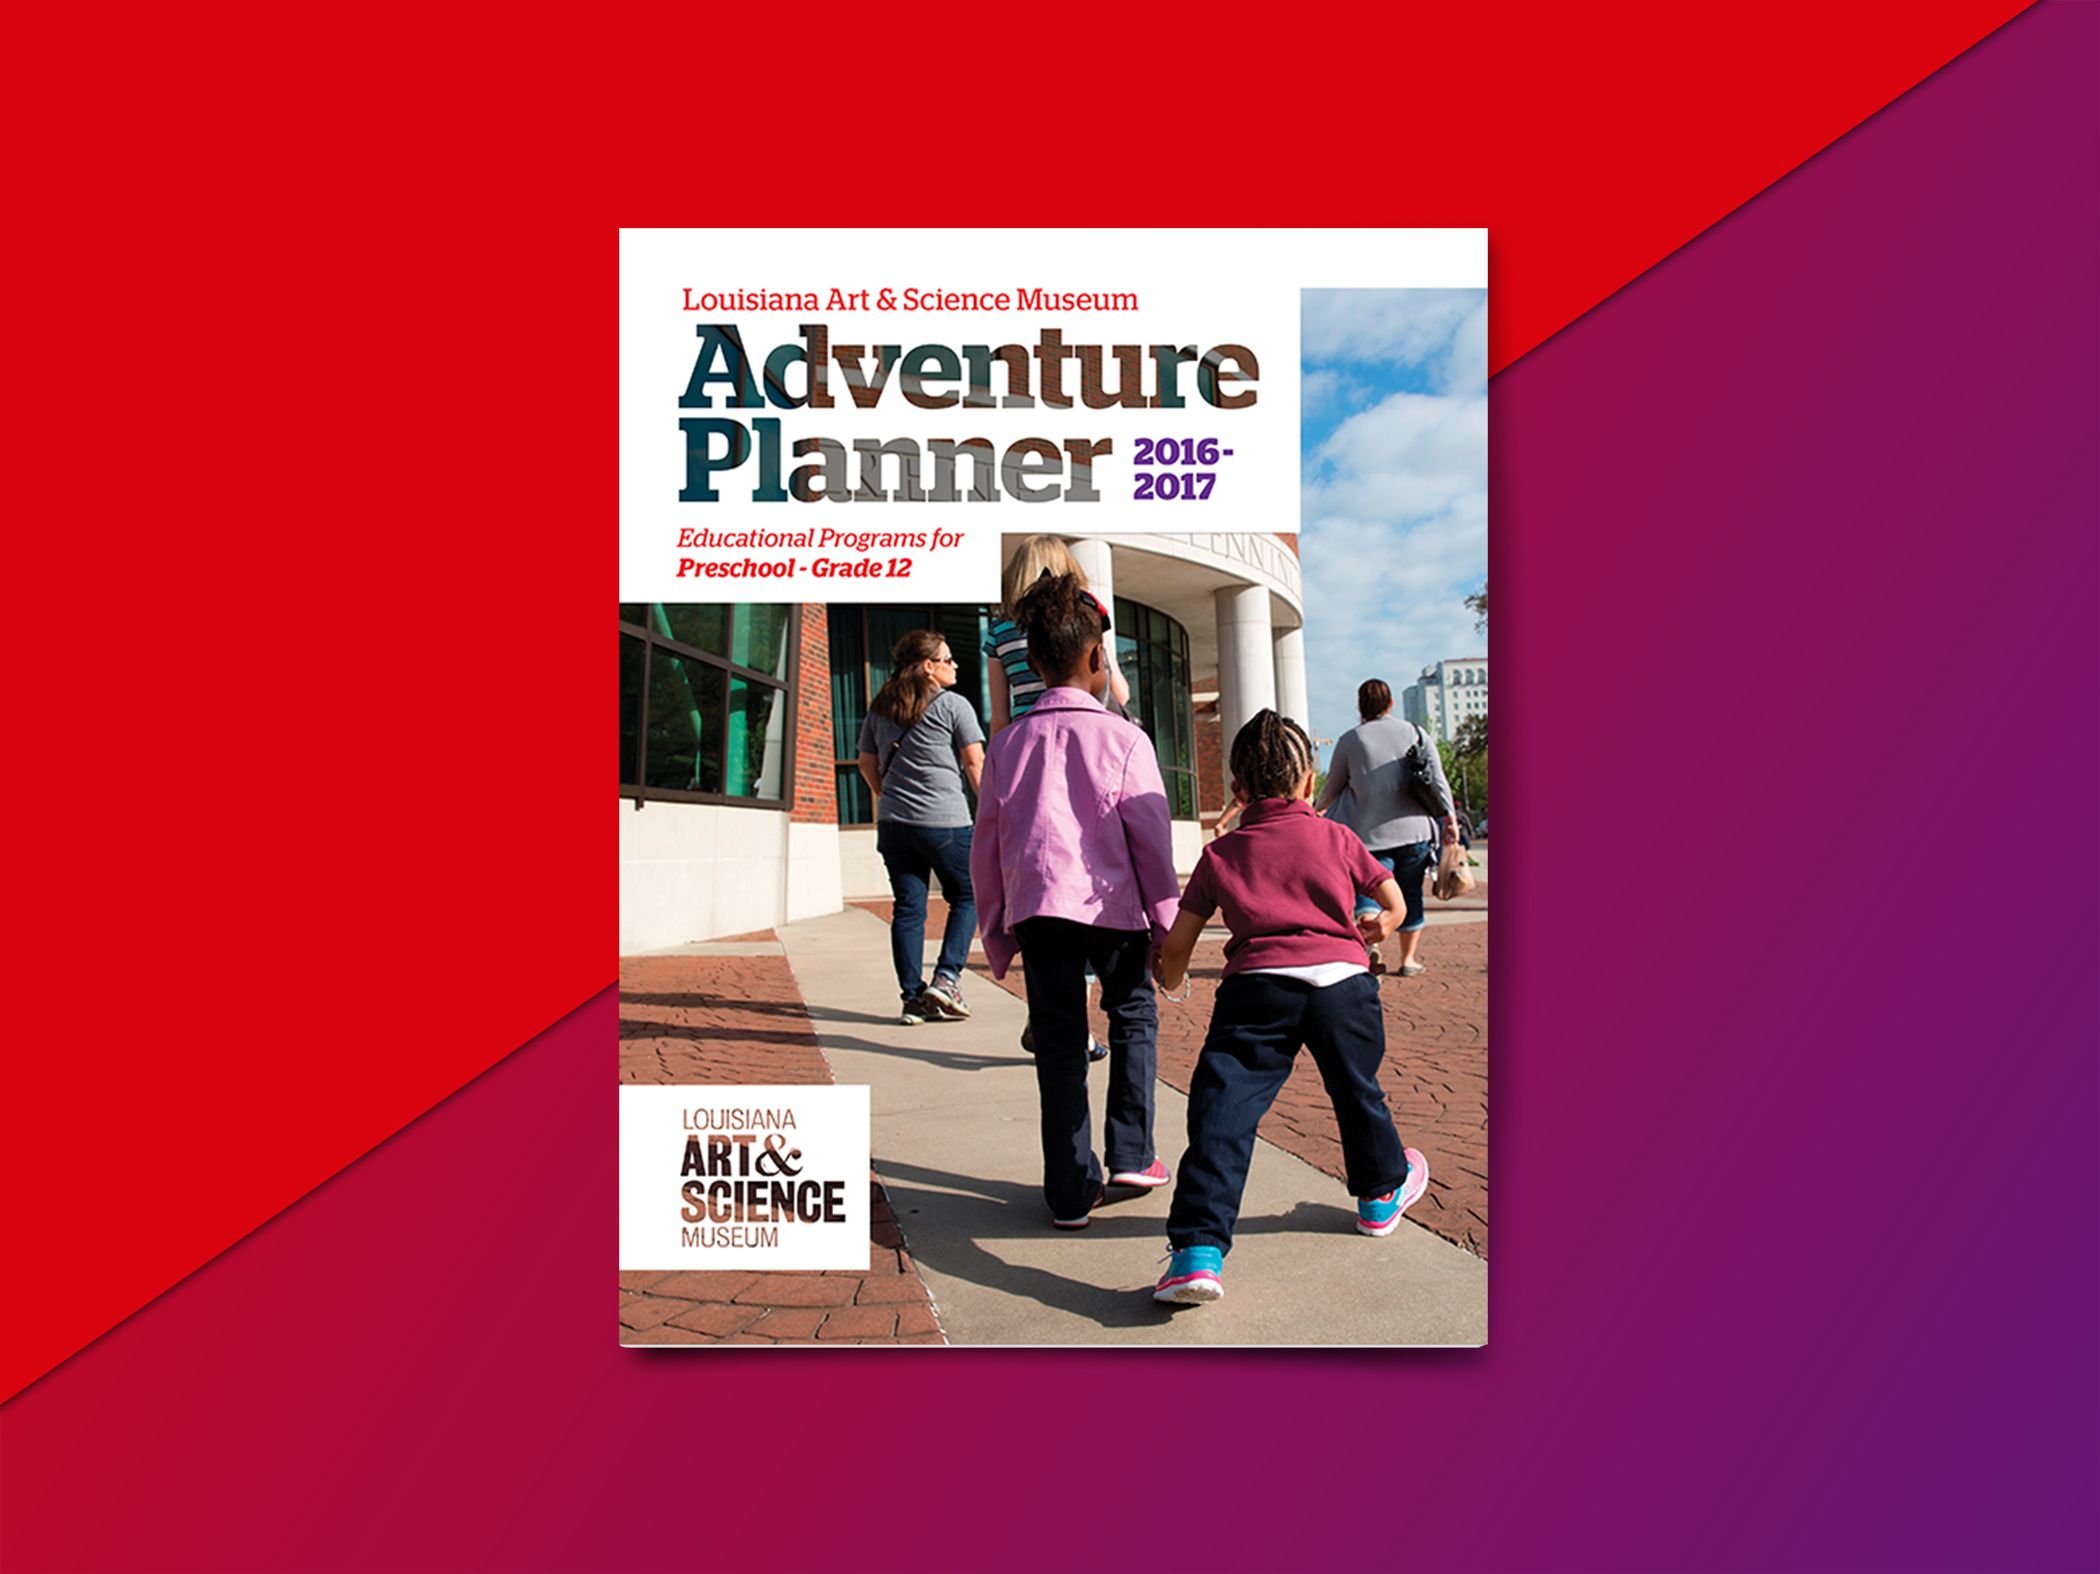 LASM Adventure Planner - Louisiana statewide brochure for the Louisiana Art and Science Museum. The Adventure Planners were primarily sent to teachers and professors across the state of Louisiana to inform them of the programs, lectures, exhibits, and tours that the museum offered. Using their pre-existing branding created by creative agency Tilt, I used their typefaces, gradient overlays, interesting use of geometric shapes and grid structure. Organization was key as well as quickly being able to find important information.